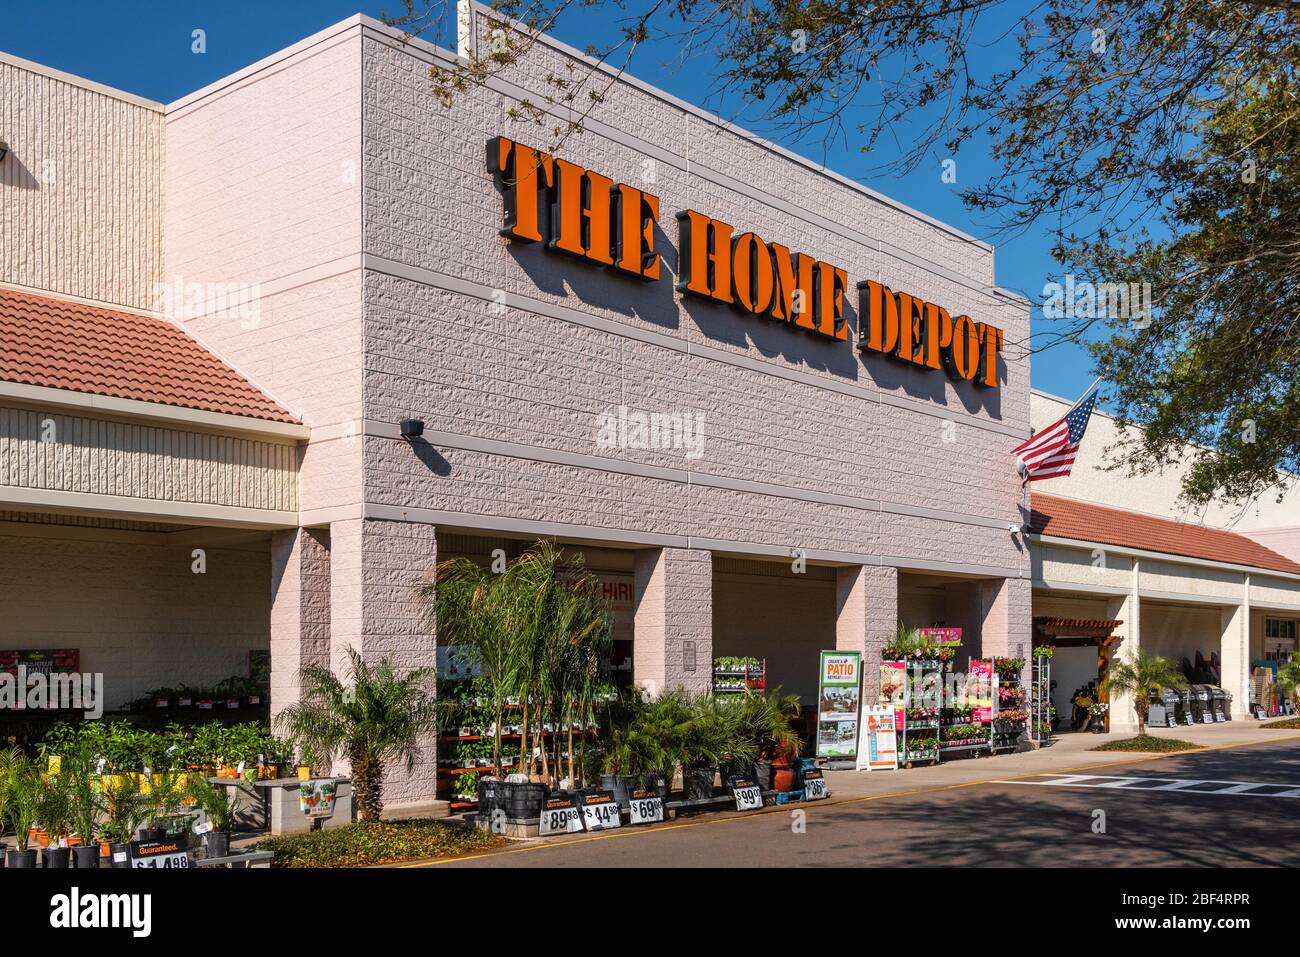 Hardware Store Chain Entrance High Resolution Stock Photography And Images Alamy